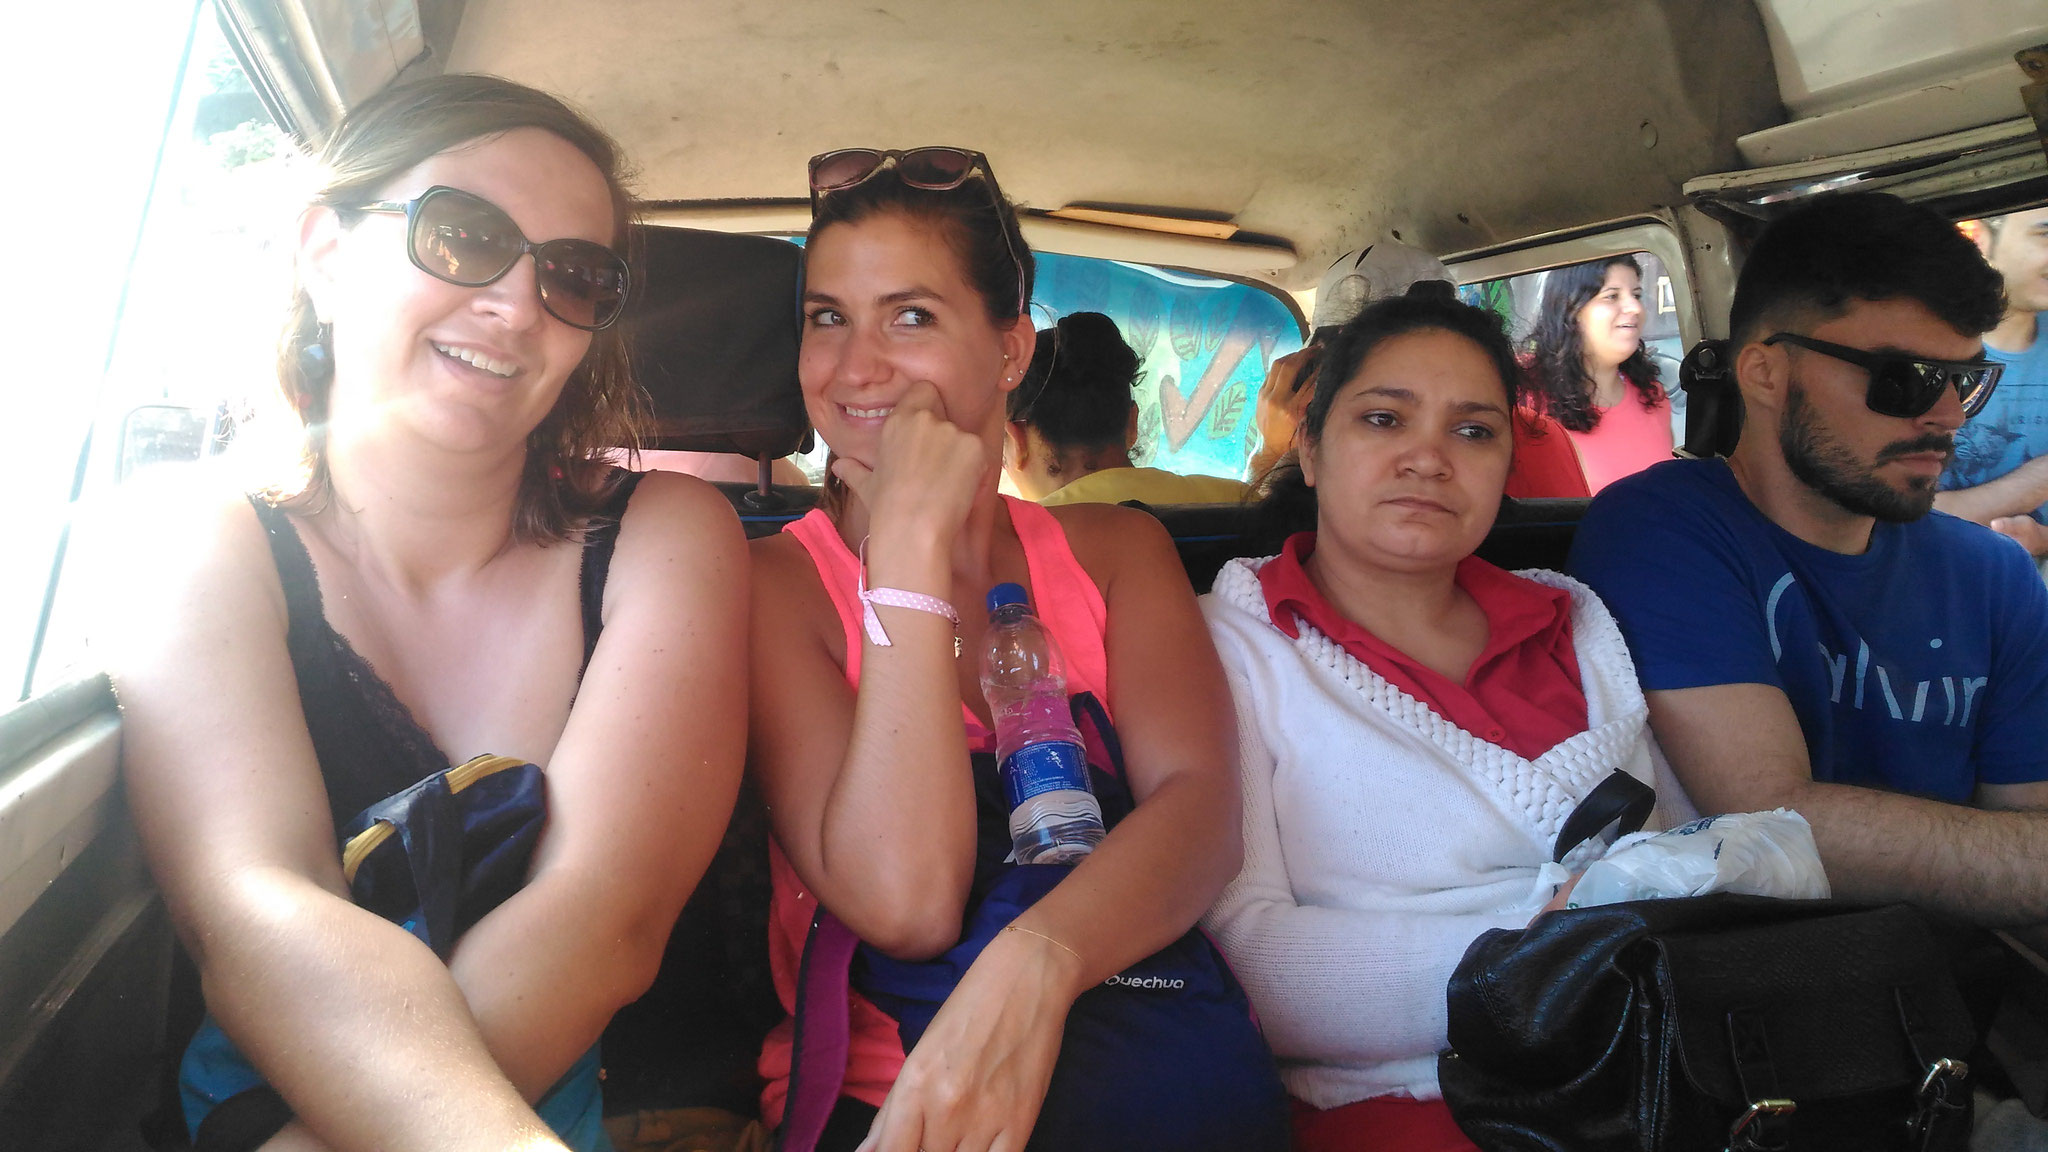 we go up with the strong VW Van with locals